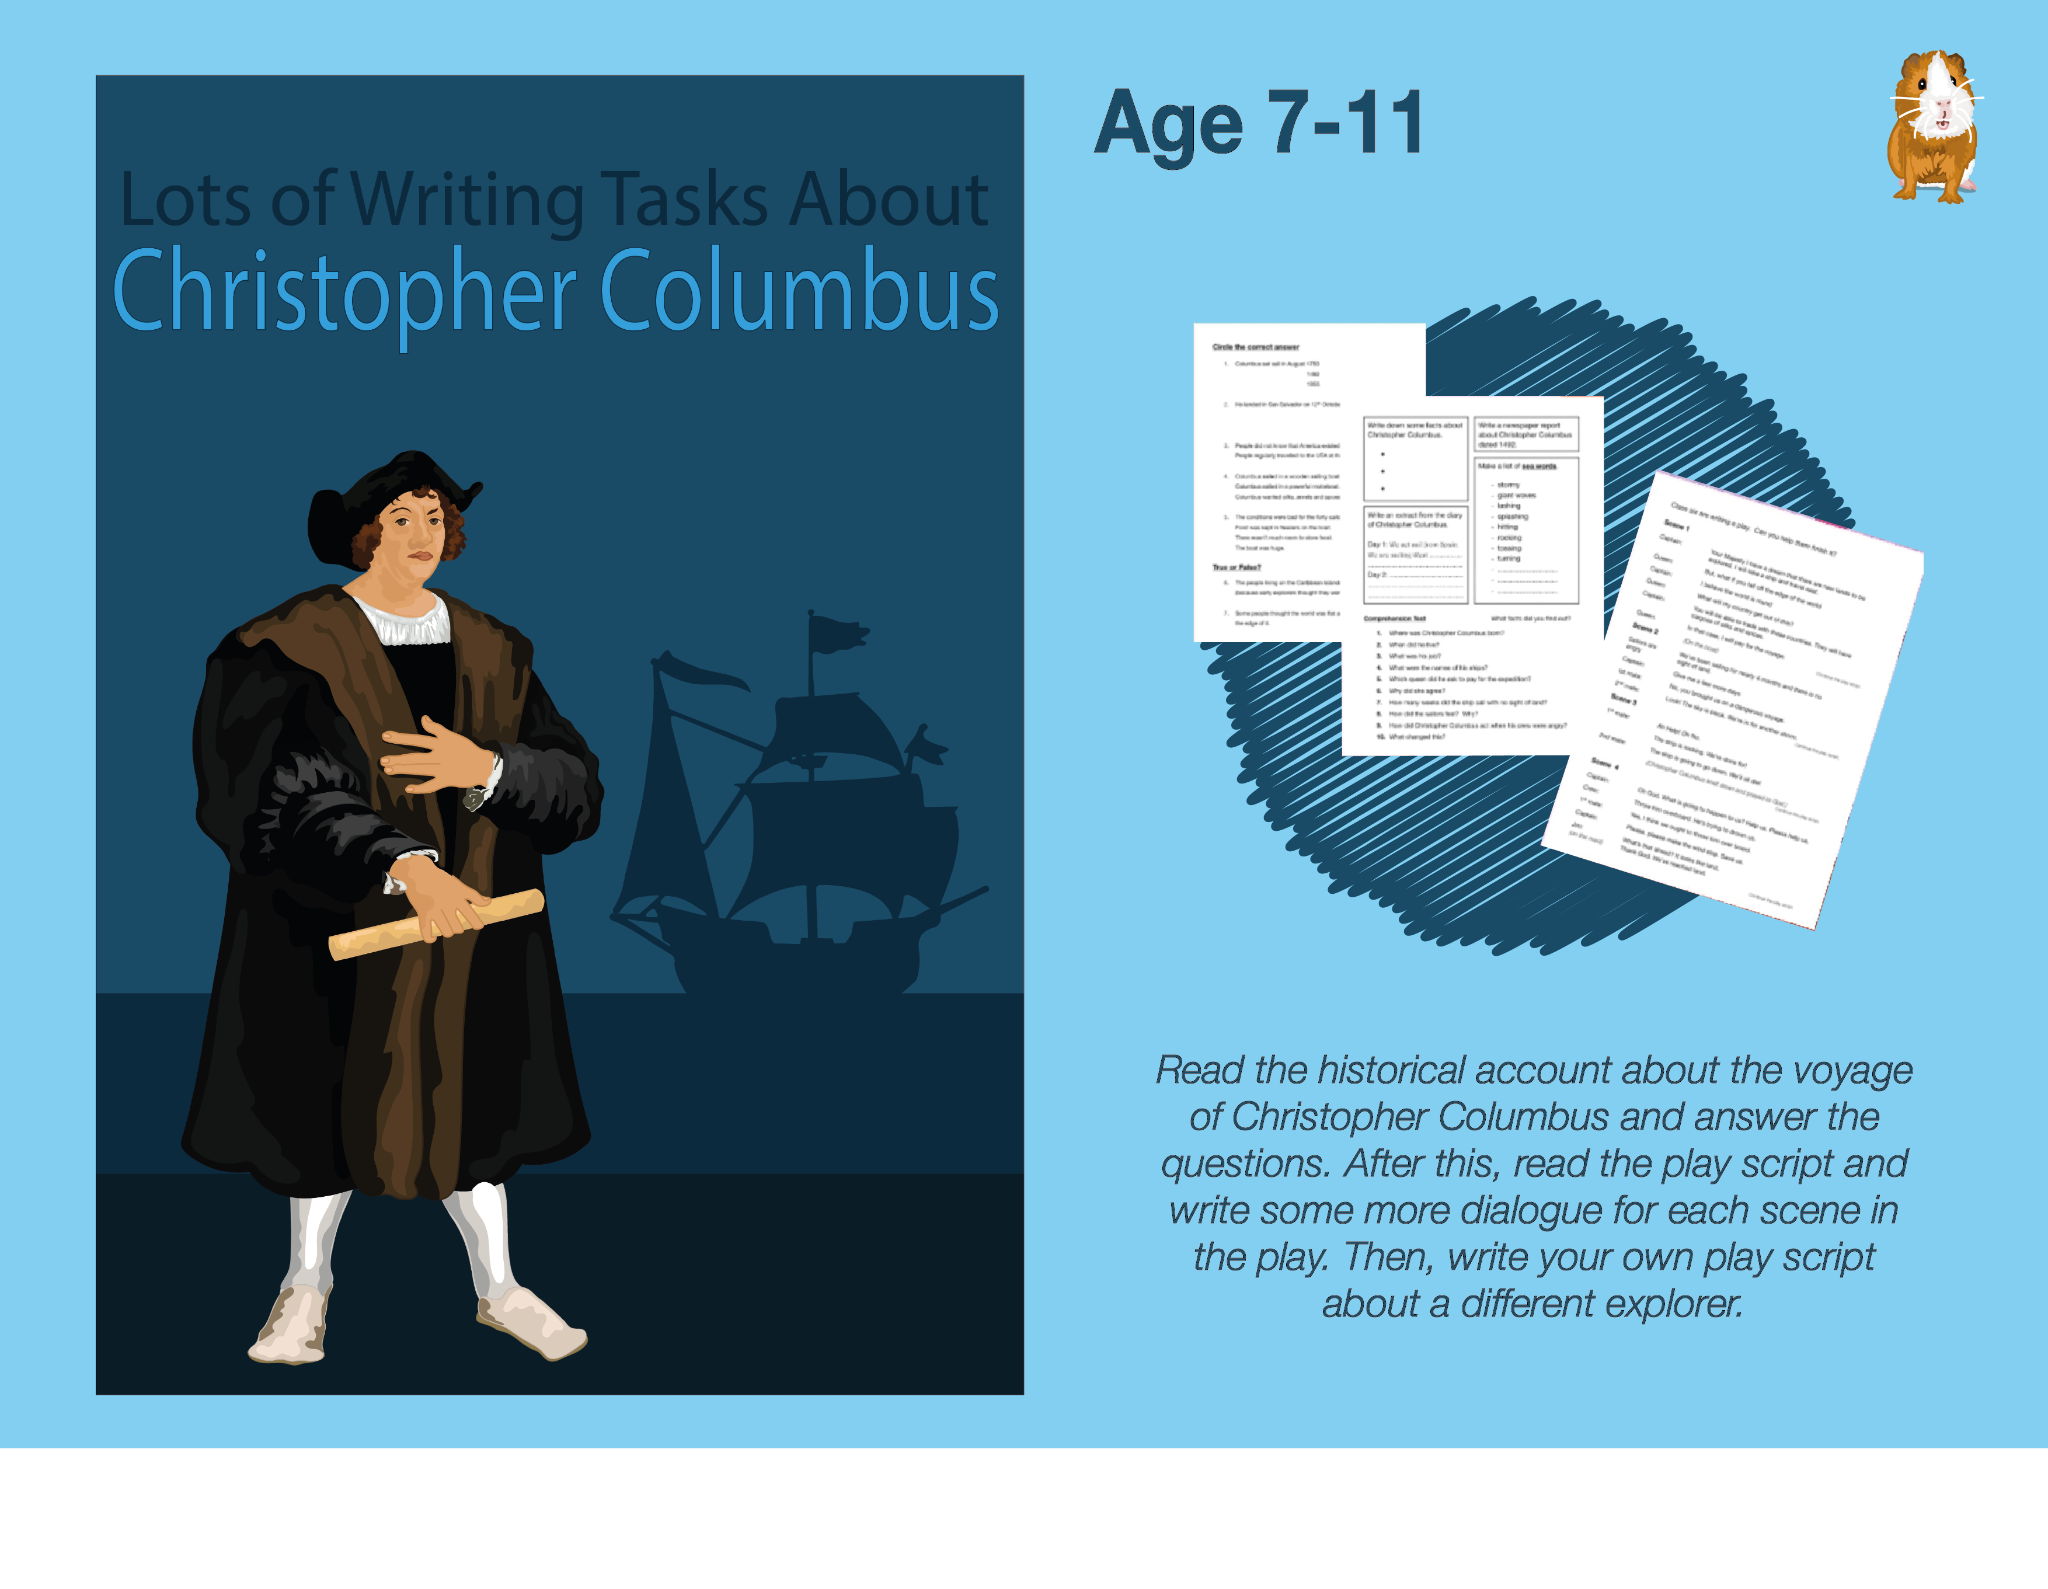 Lots Of Writing Tasks About Christopher Columbus (7-11 years)